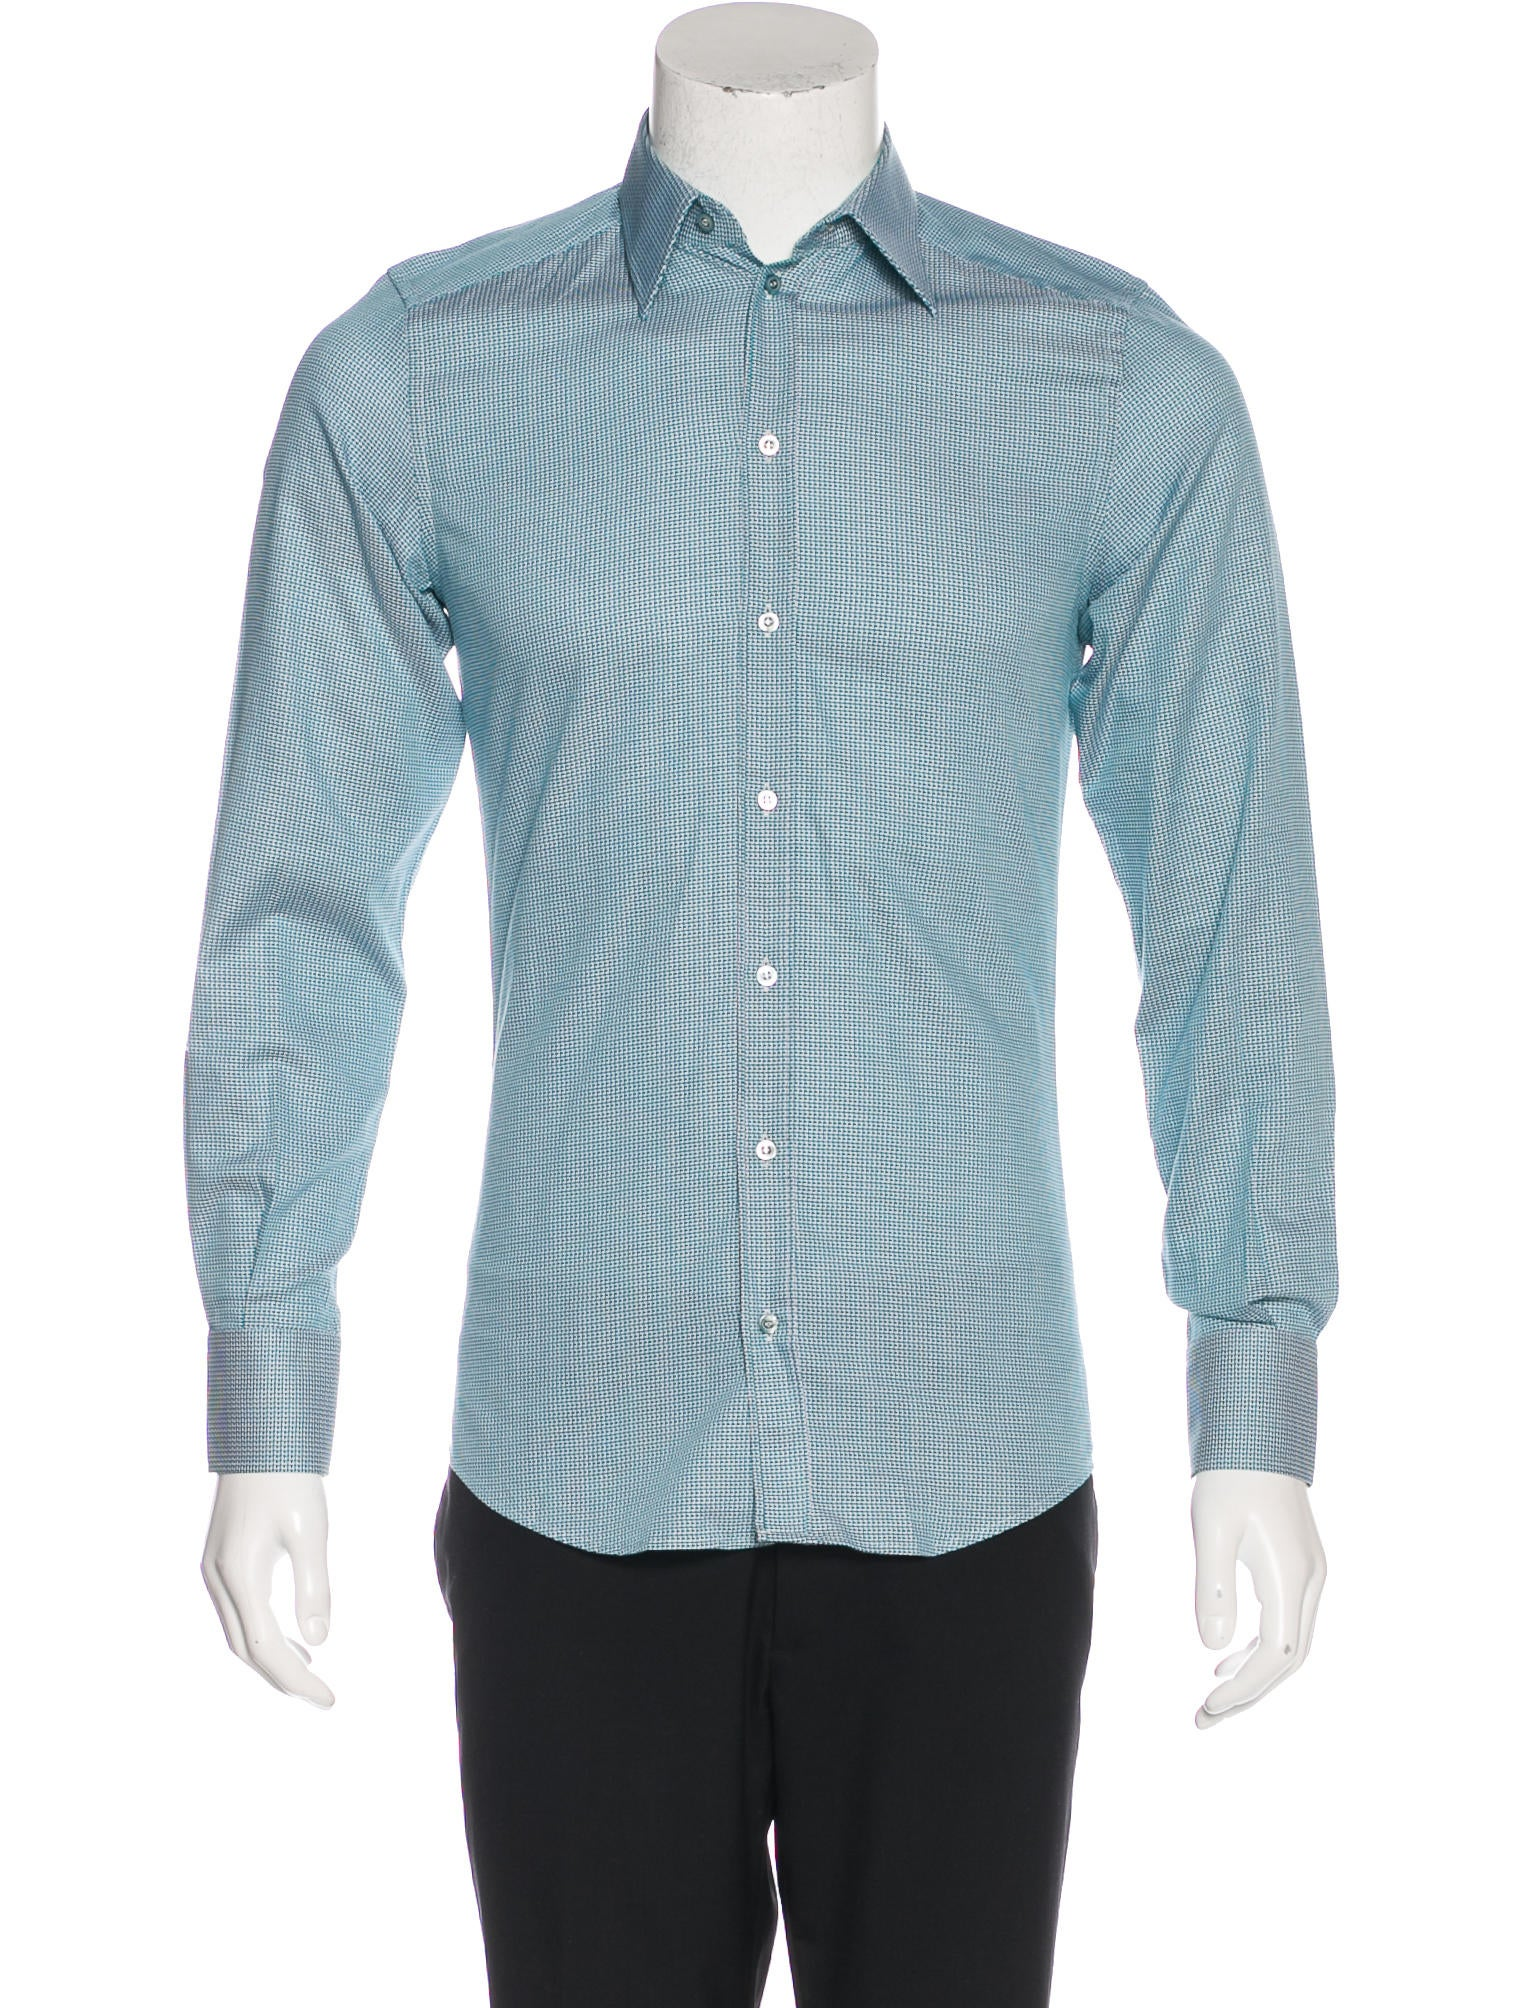 Embroidered Mens Dress Shirts 9